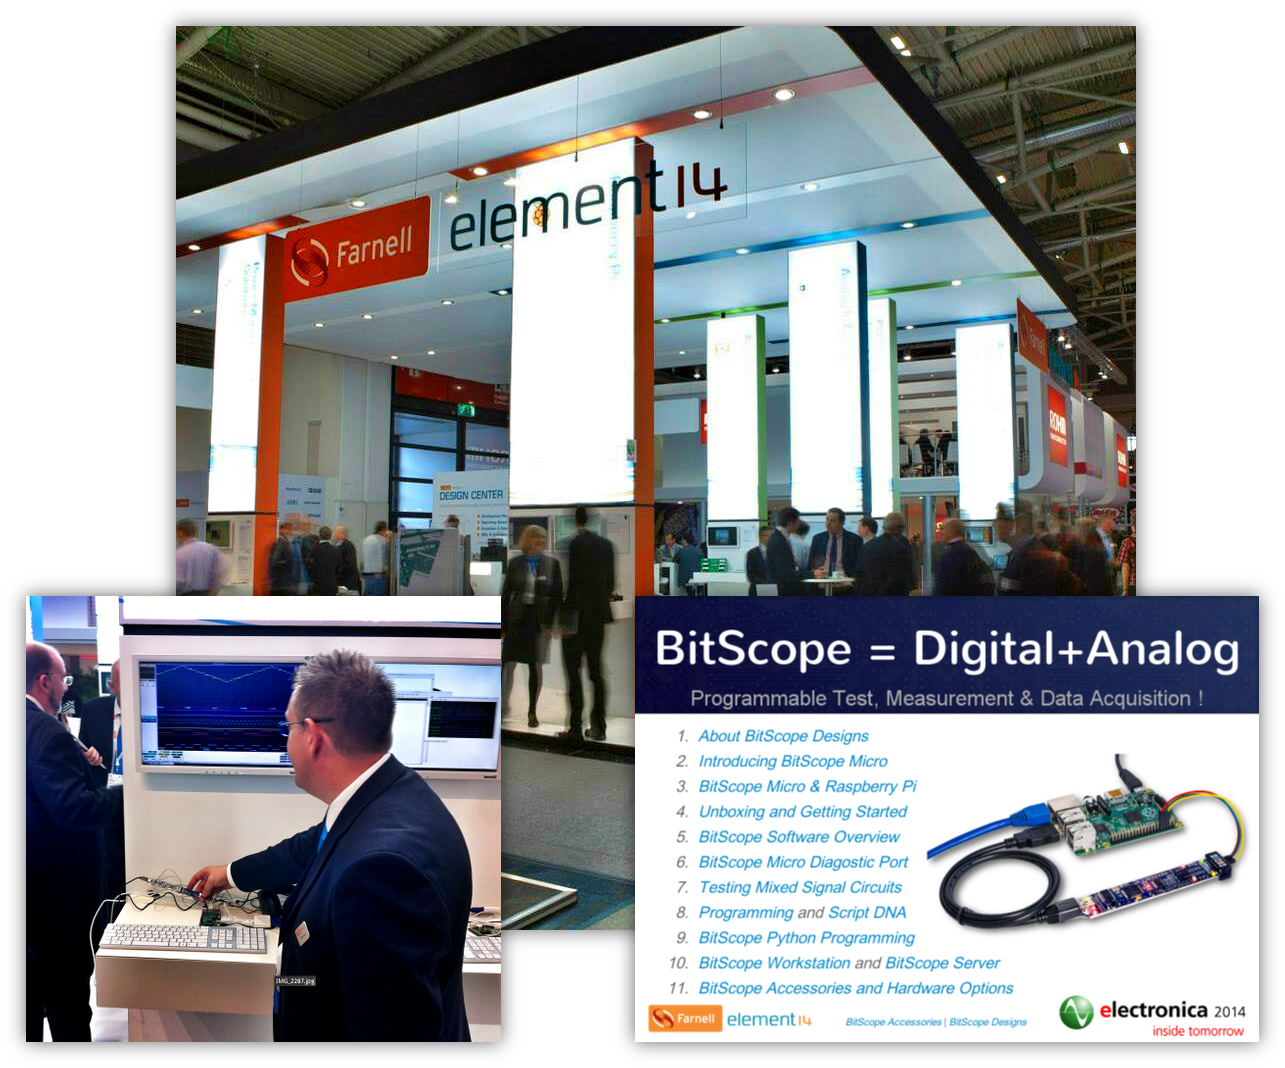 BitScope Micro at electronic 2014 with Farnell element14